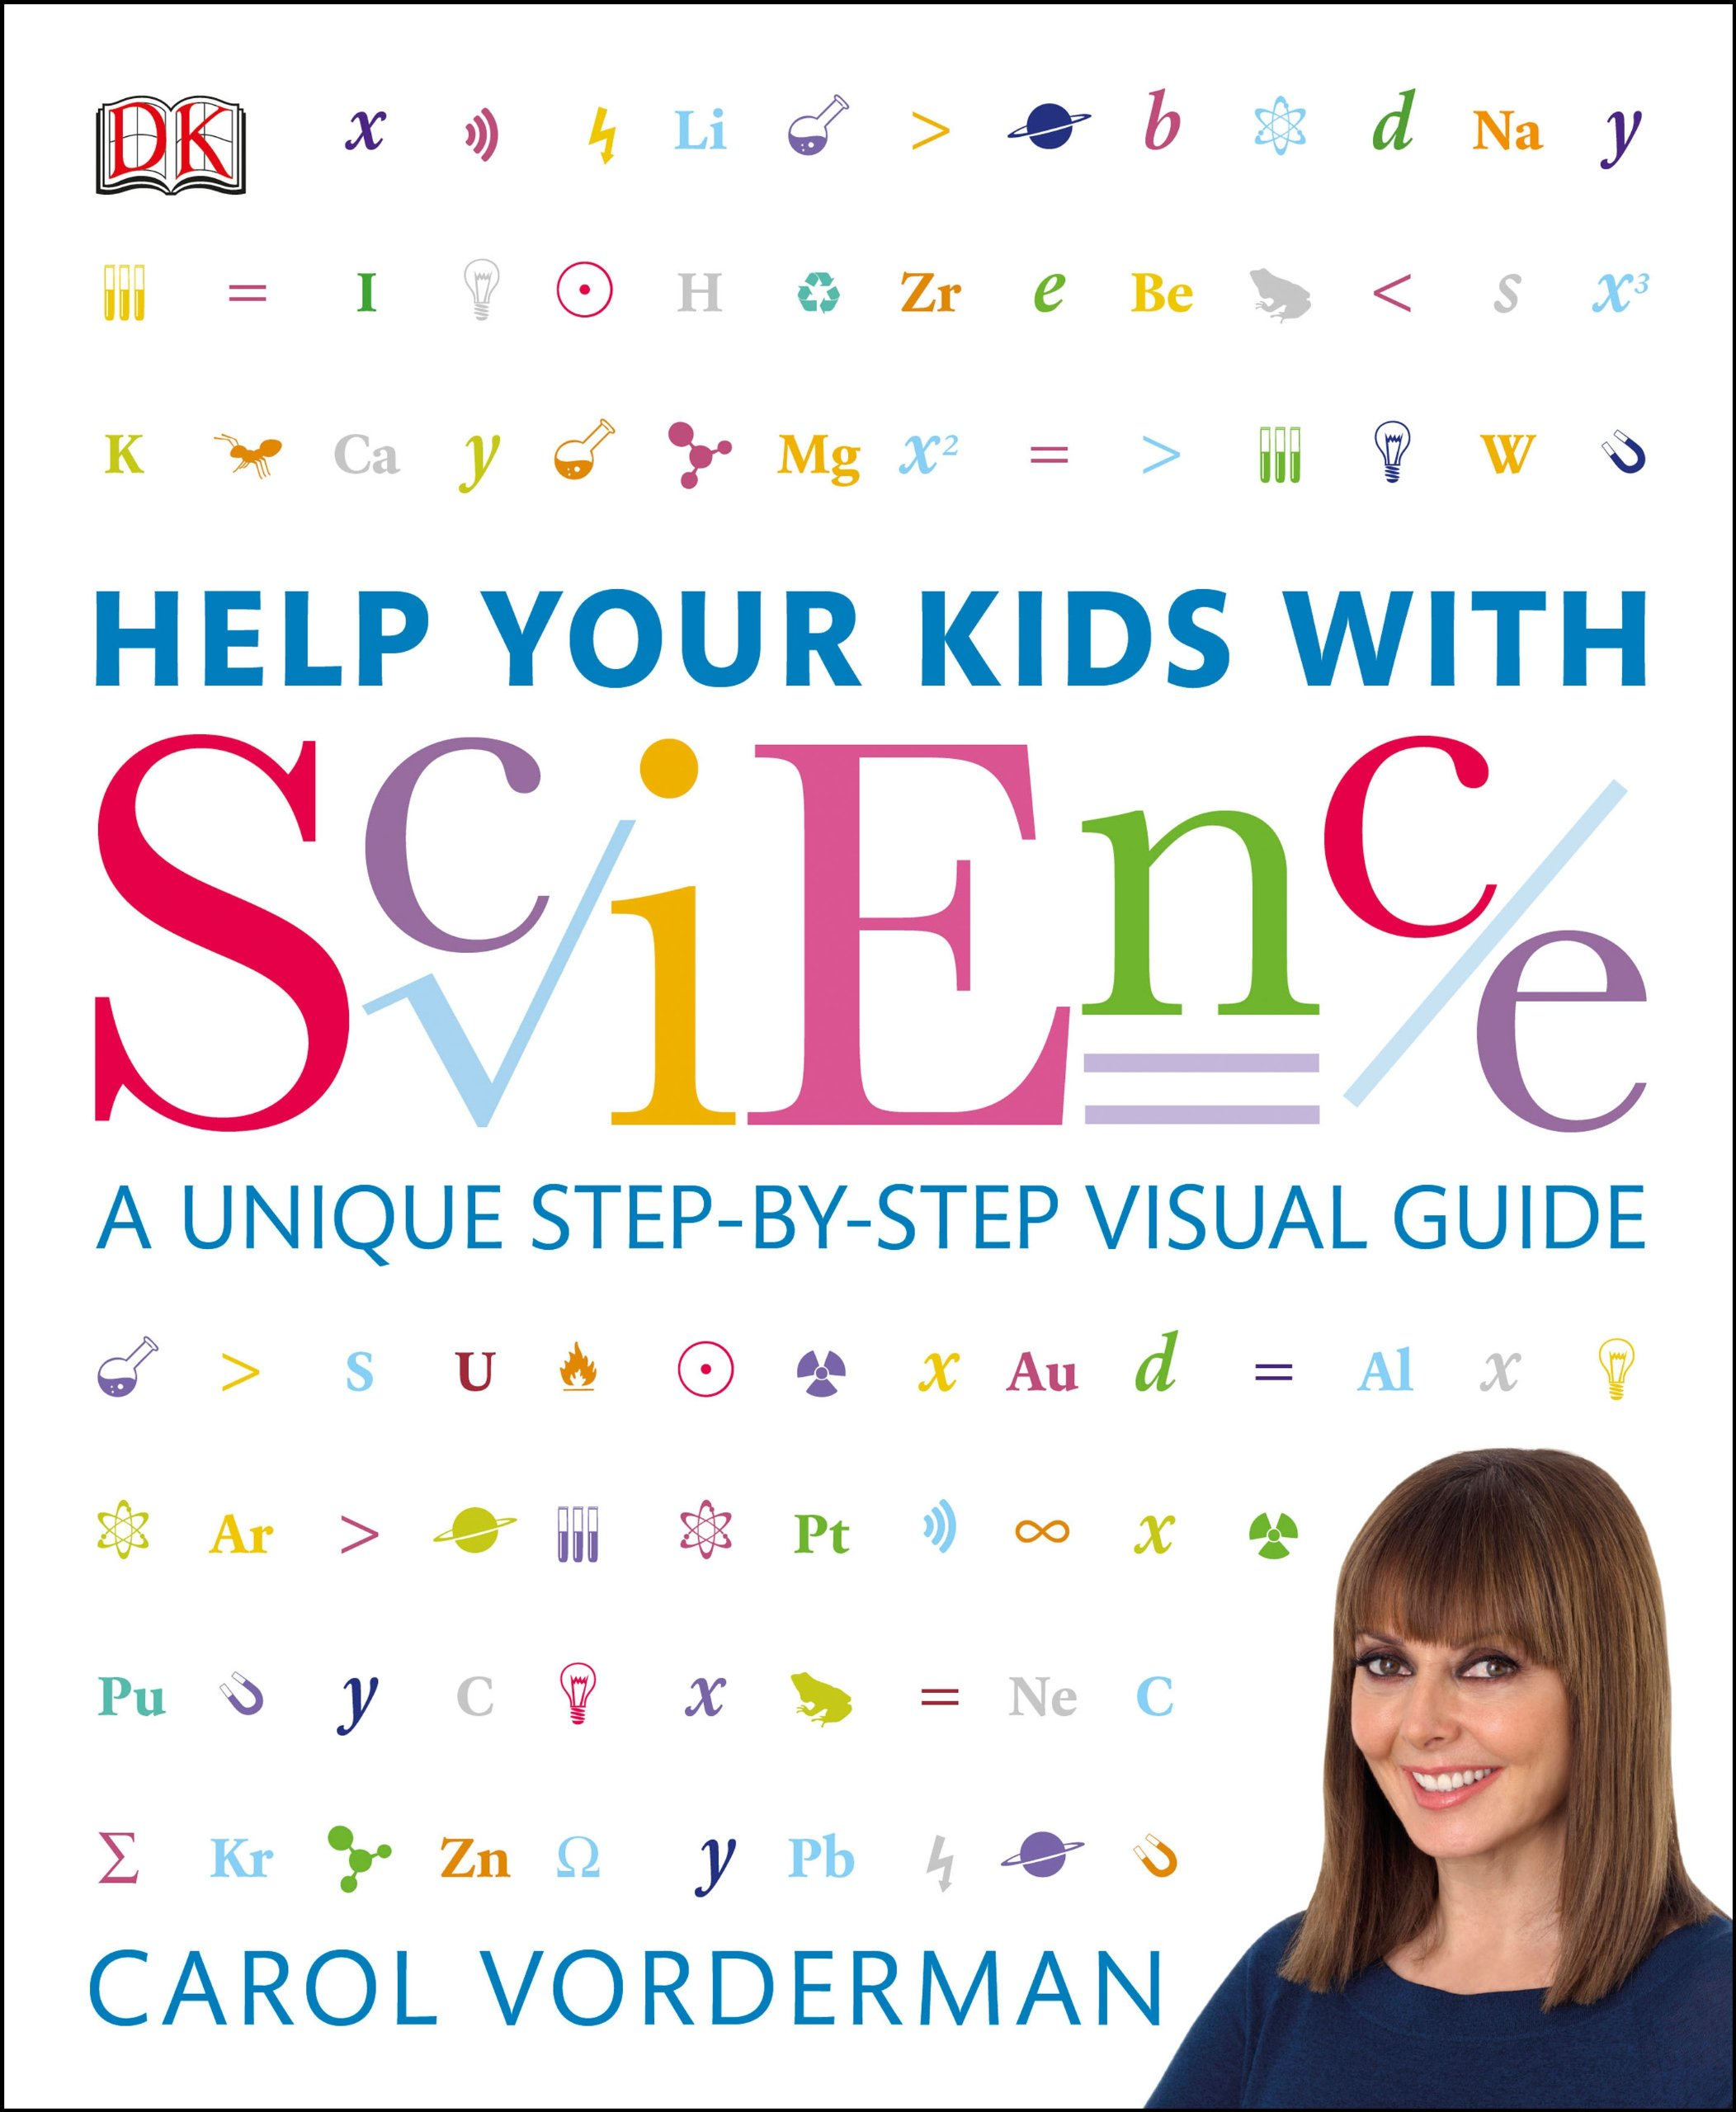 HELP YOUR KIDS WITH SCIENCE-A UNIQUE STEP-BY-STEP VISUAL GUIDE